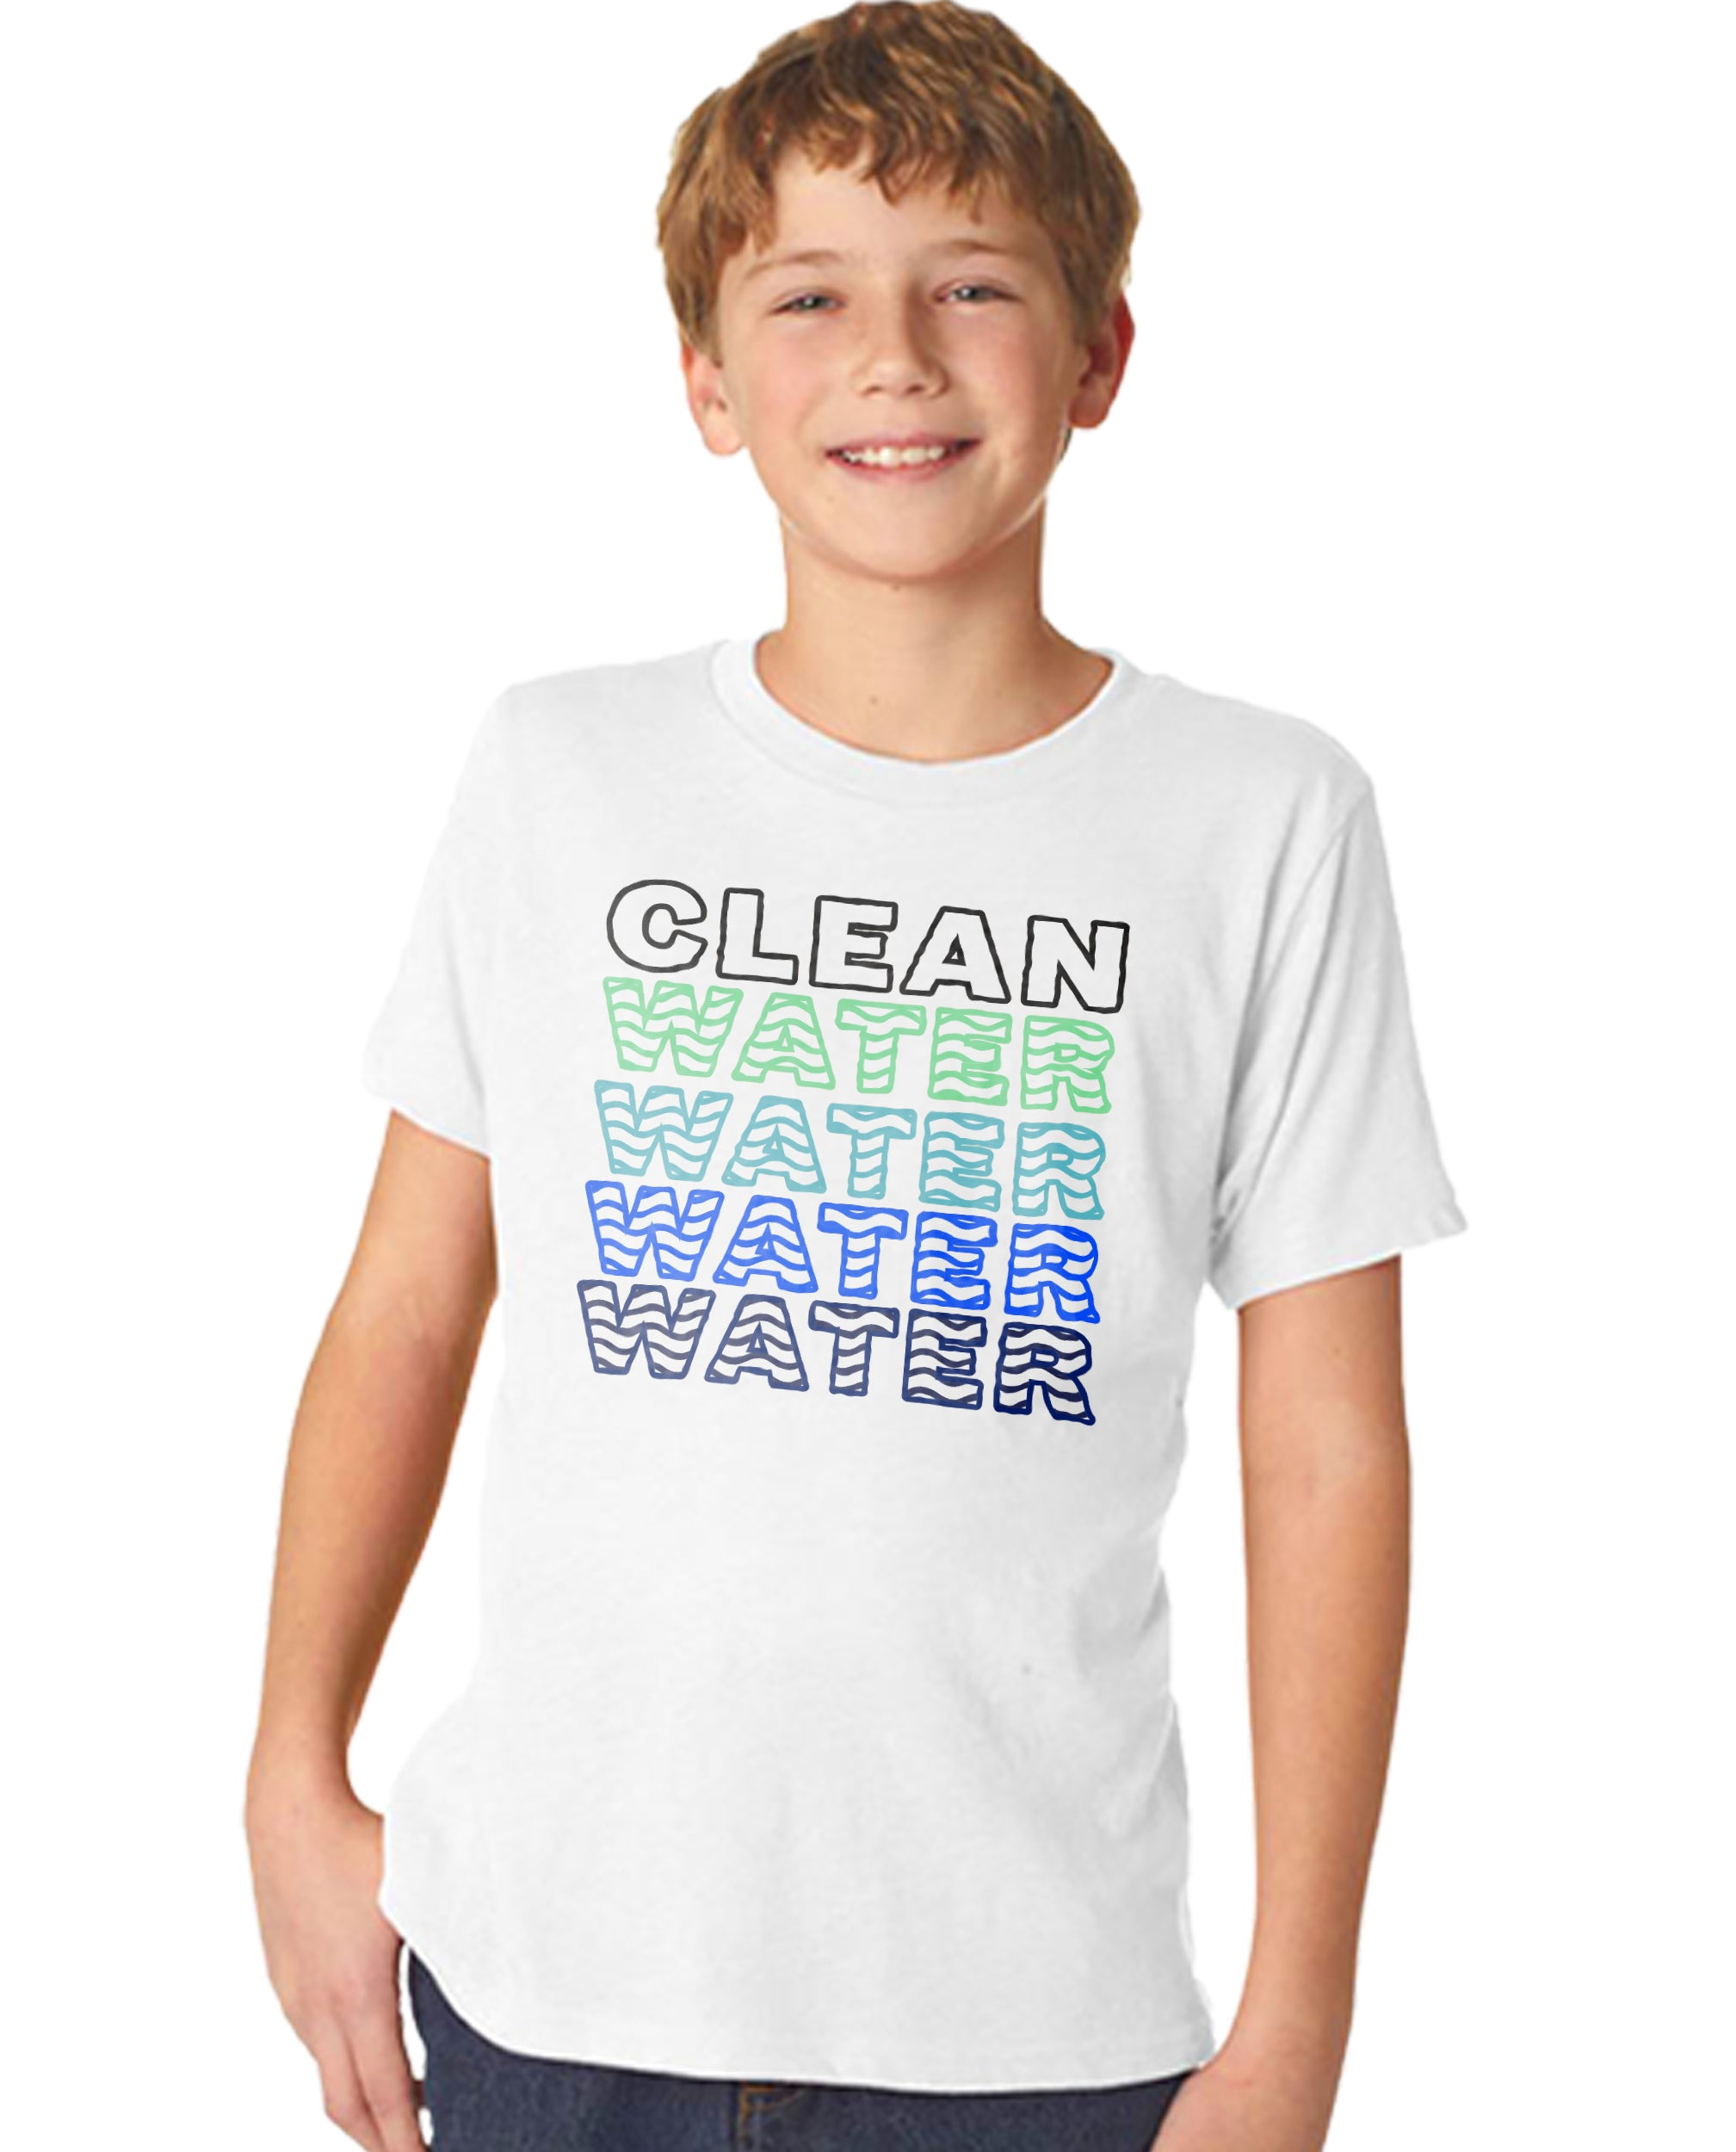 Clean Water Water Water Boy's Premium Short Sleeve Crew